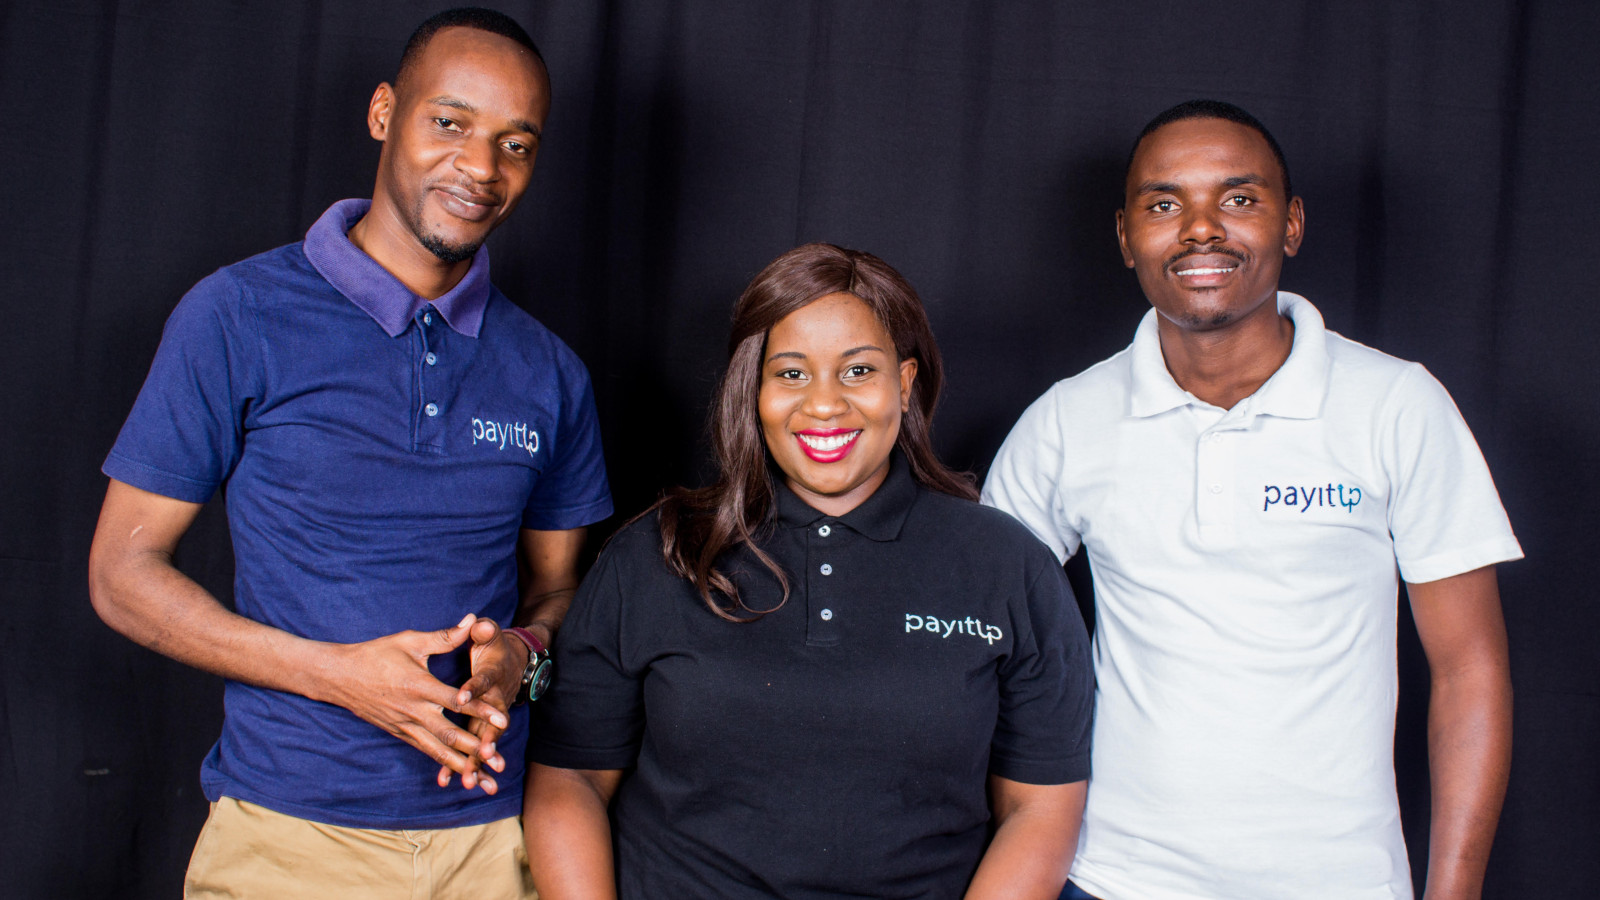 Featured image, left to right: Payitup founding team president Ronald Tapfuma Rwodzi, CEO Aretha Gonyora, and COO Kenneth Tafadzwa Matikizha (Supplied)